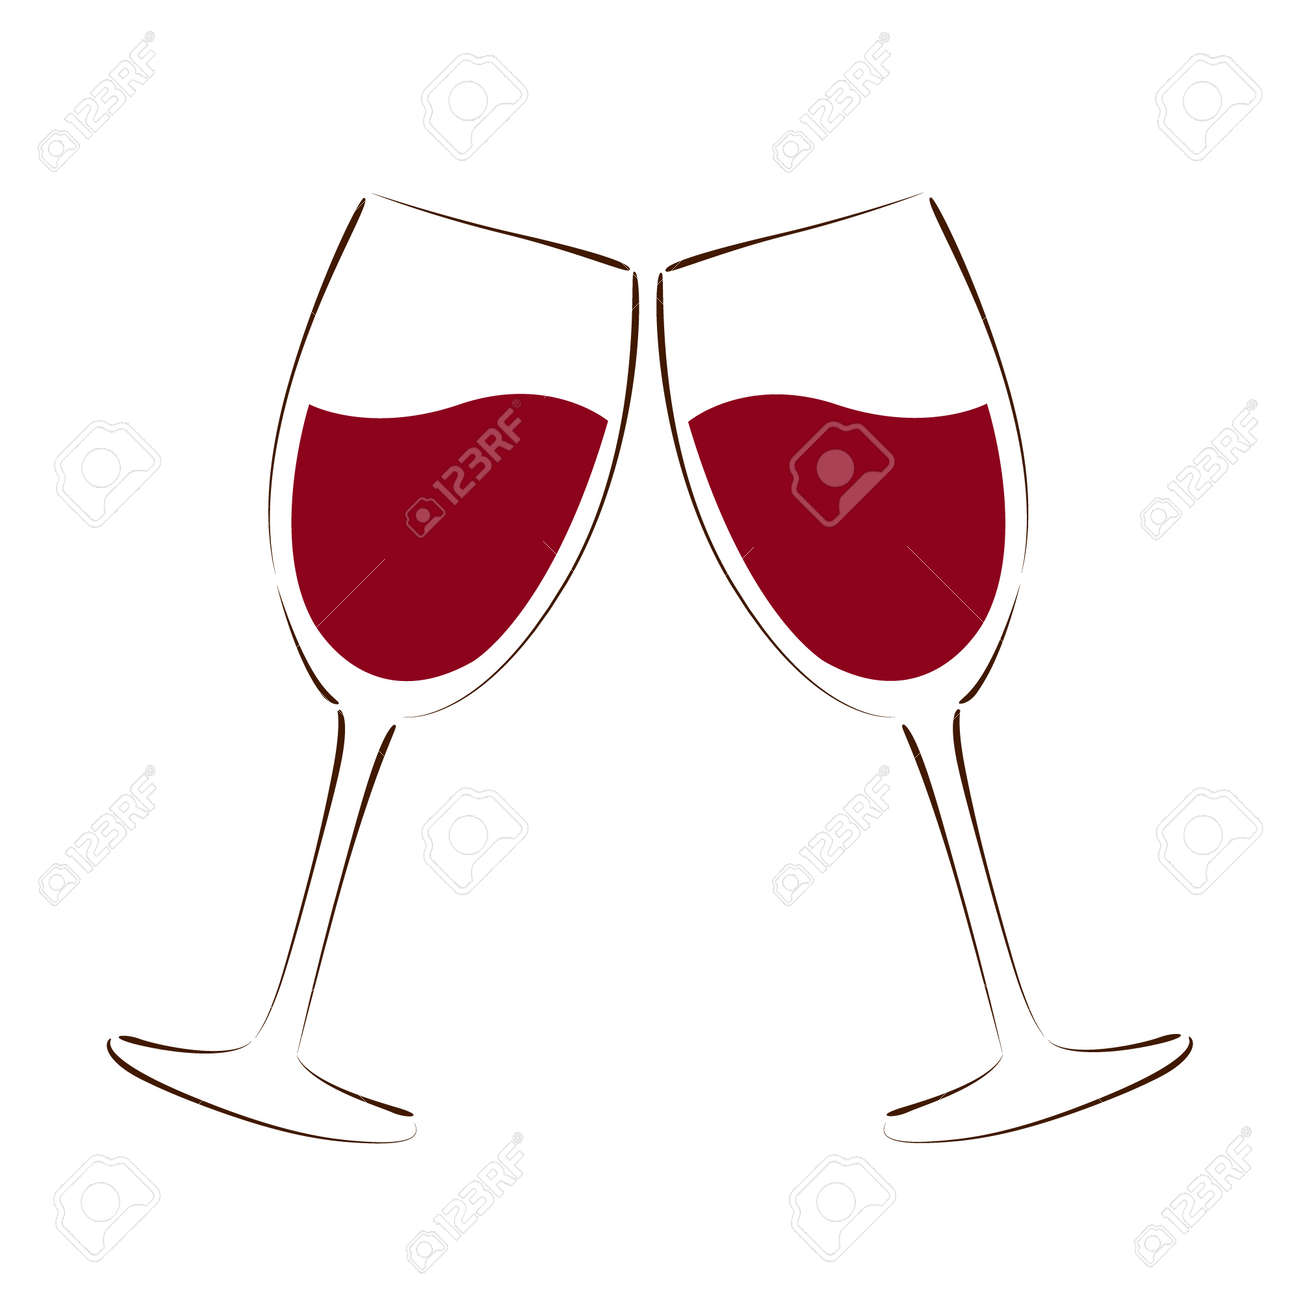 Sketched Glass Of Red Wine Design Template For Label Banner Royalty Free Cliparts Vectors And Stock Illustration Image 45127061